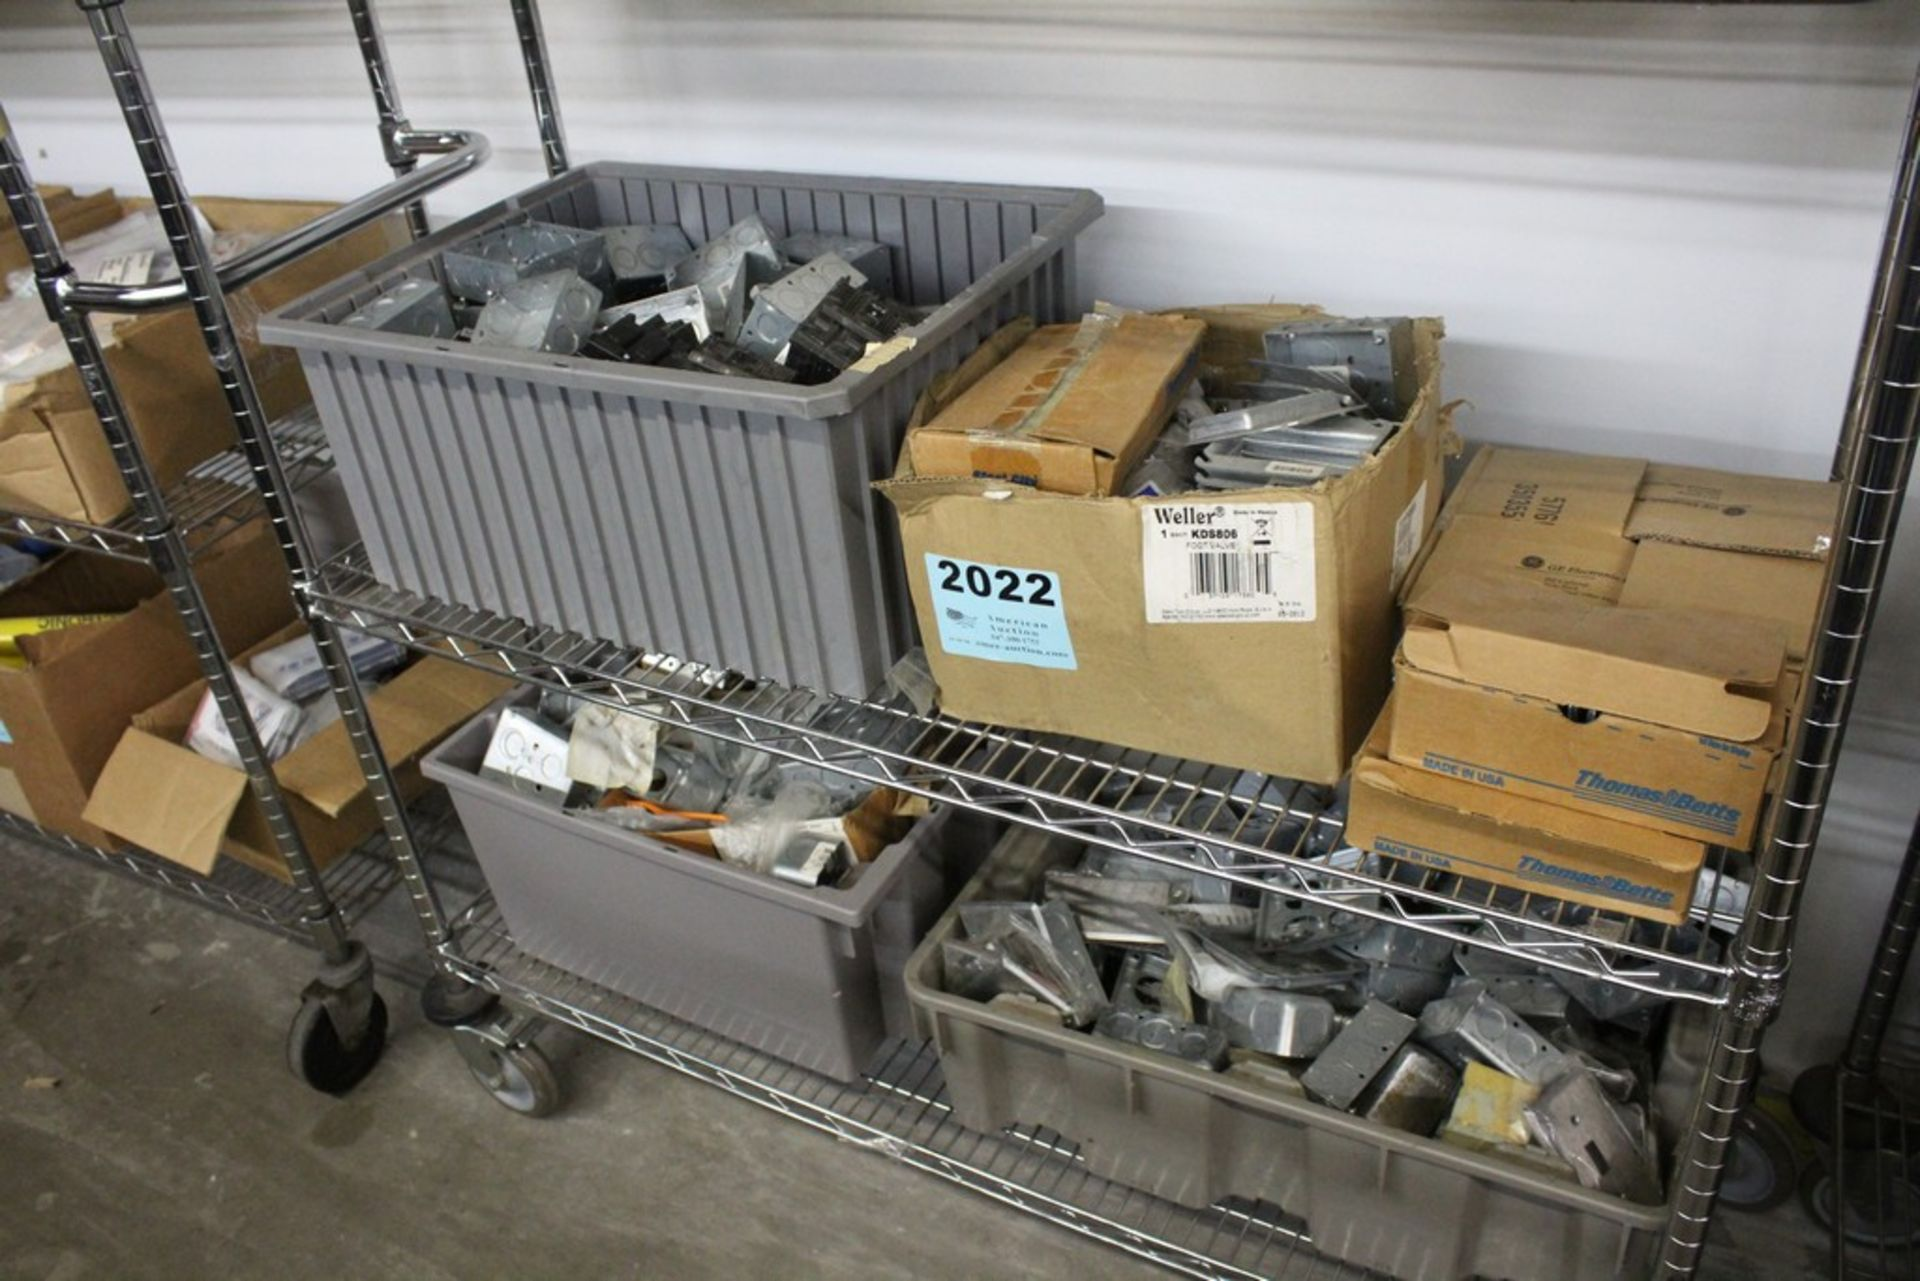 Lot 2022 - WIRING COMPONENTS ON SHELF